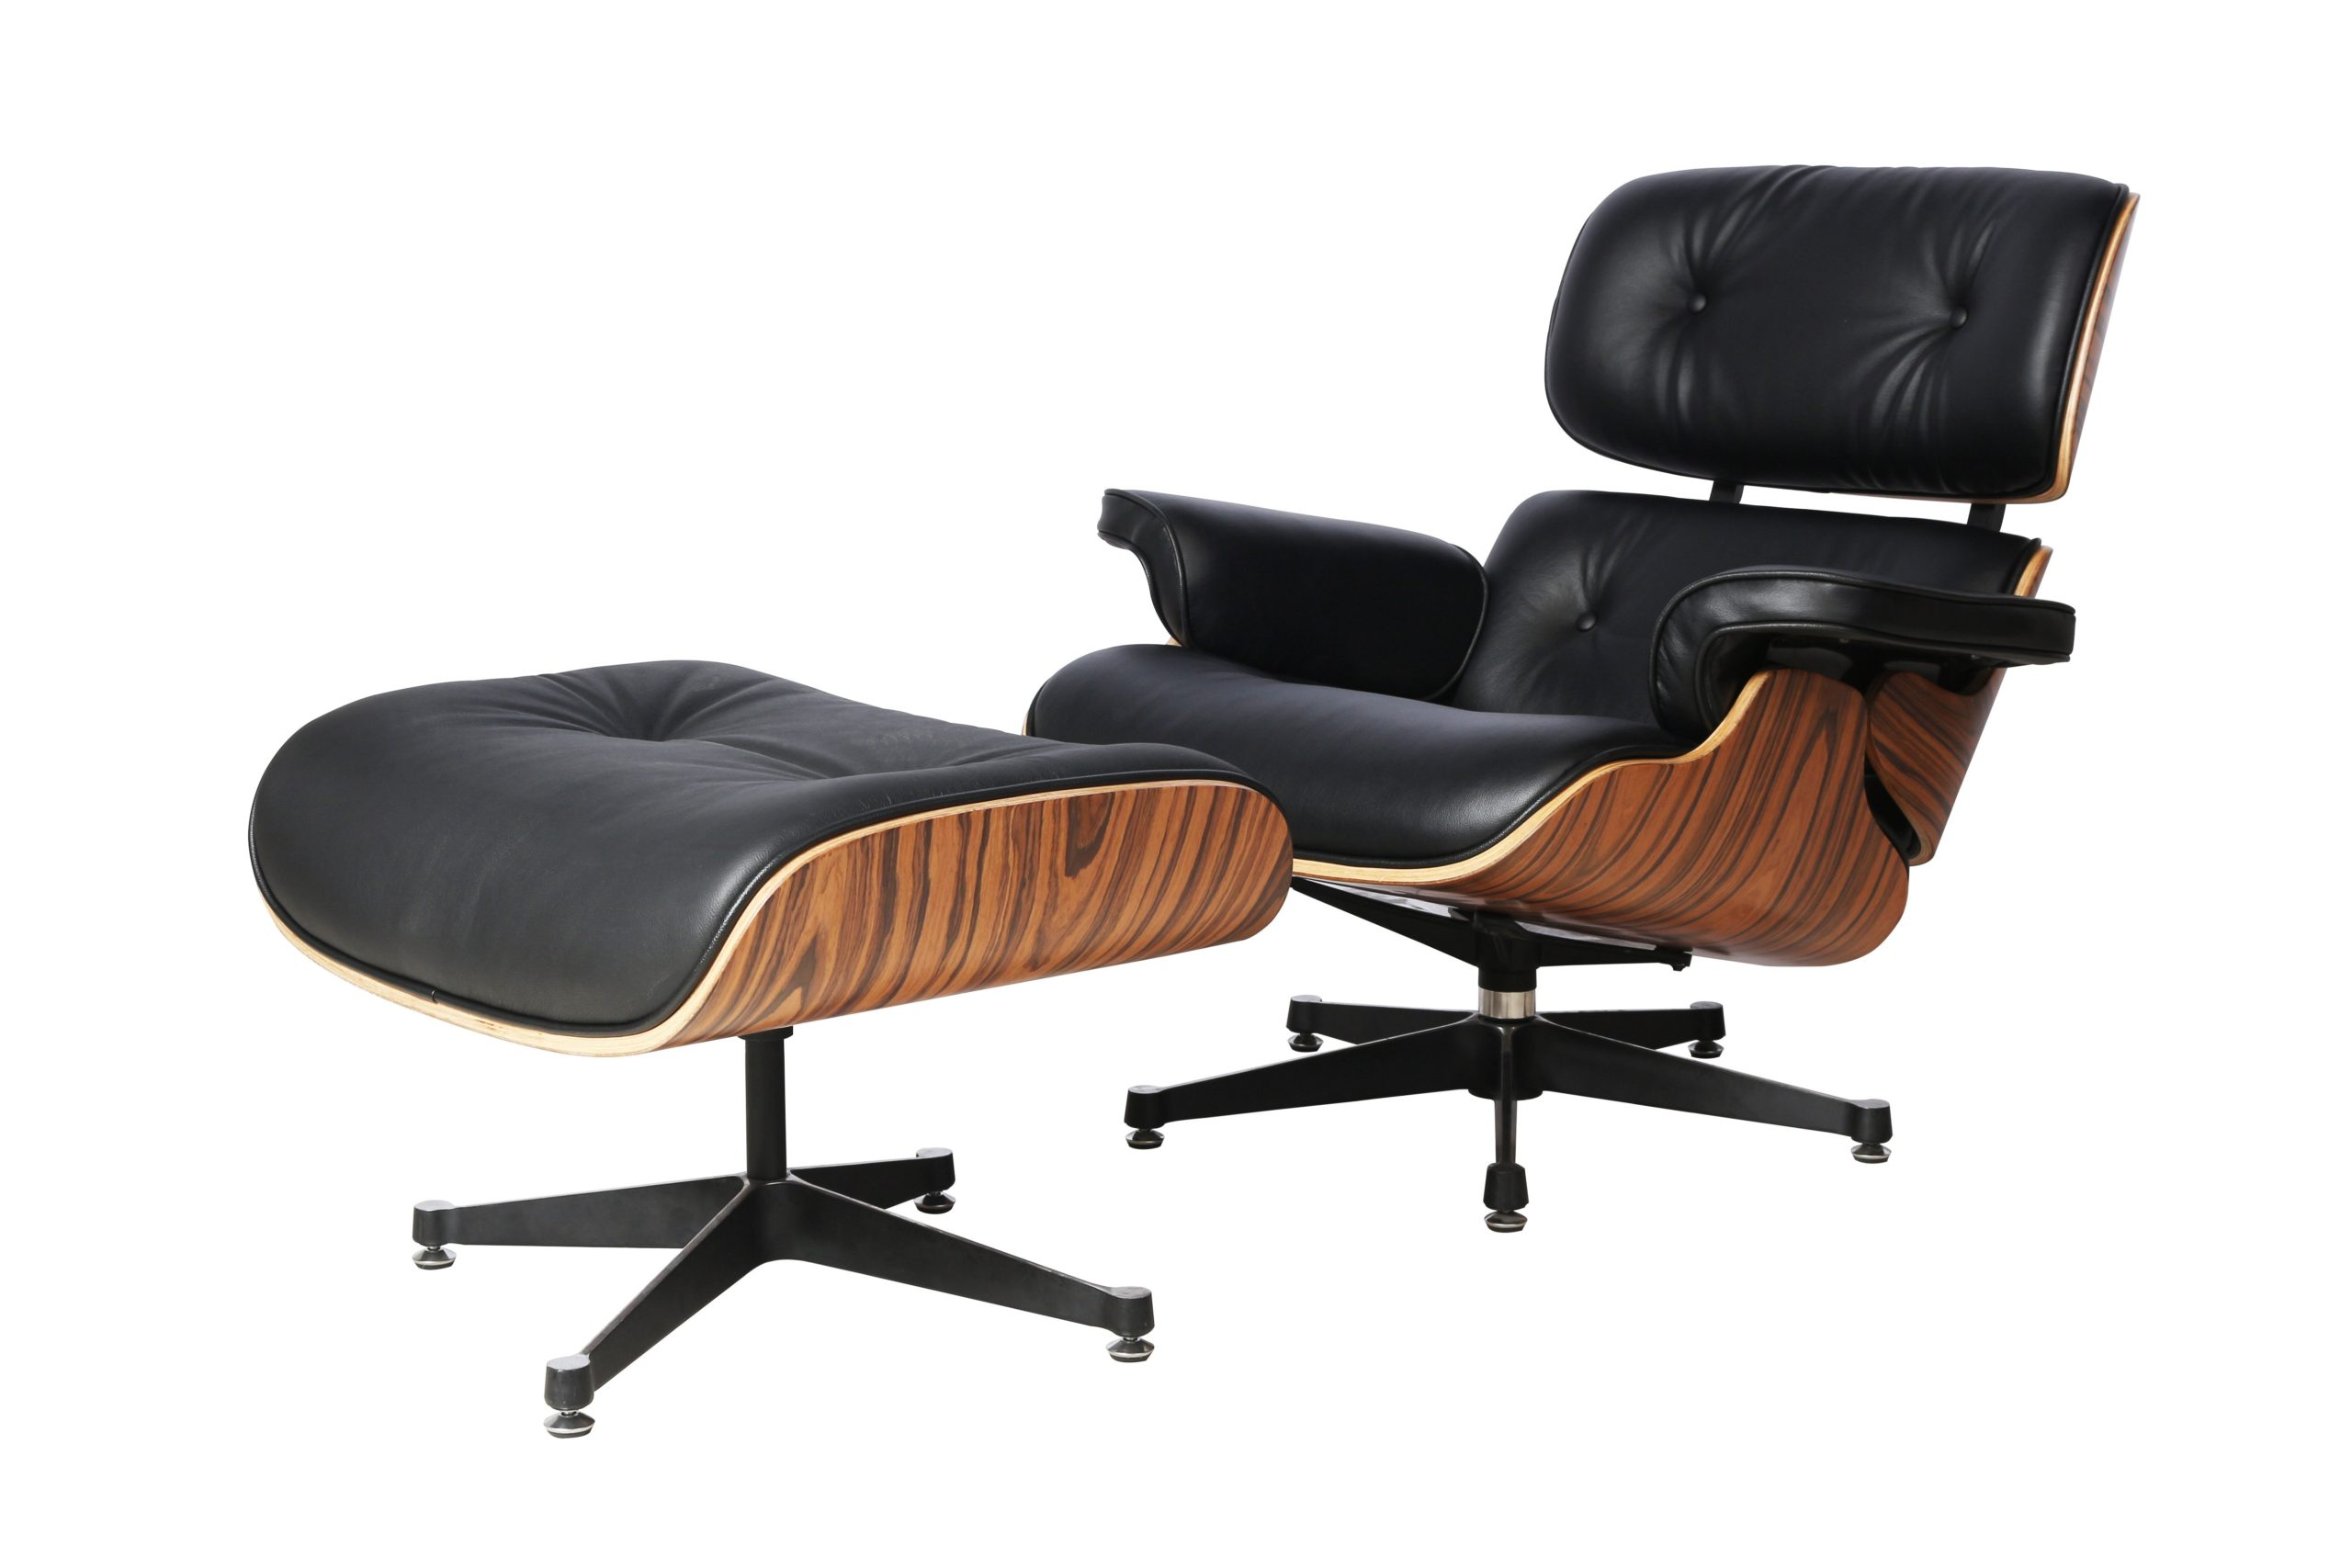 Charles Eames Replica Lounge Chair And Ottoman - Black - Light Wood Rose wood - Elephant Base - DECOMICA